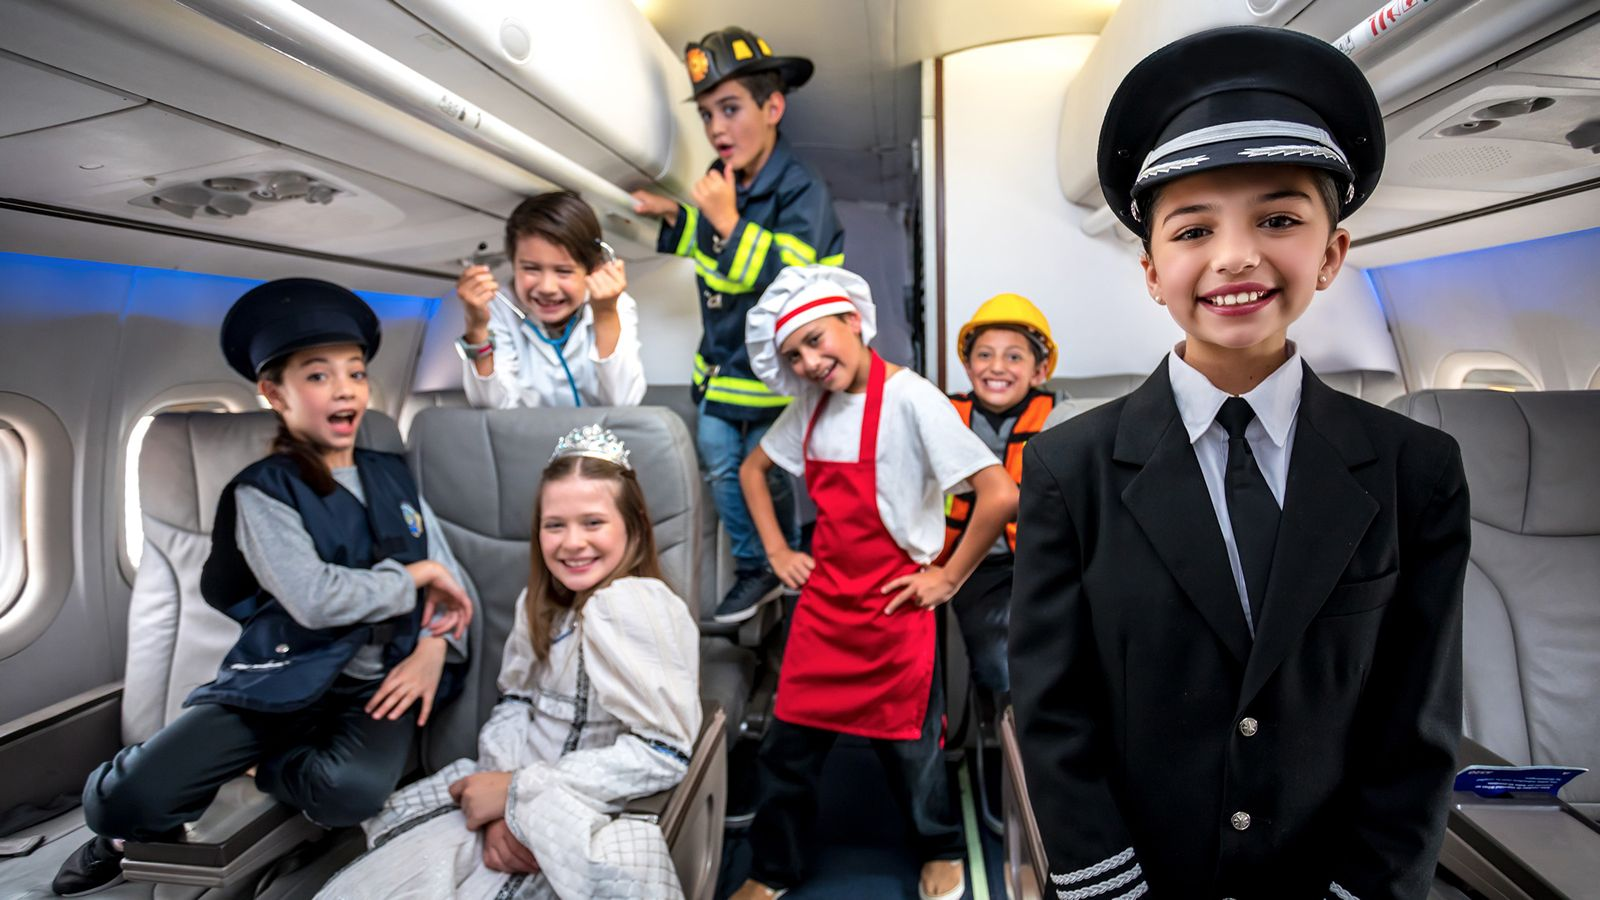 MOOYAH Burgers, Fries & Shakes to Open in First KidZania USA